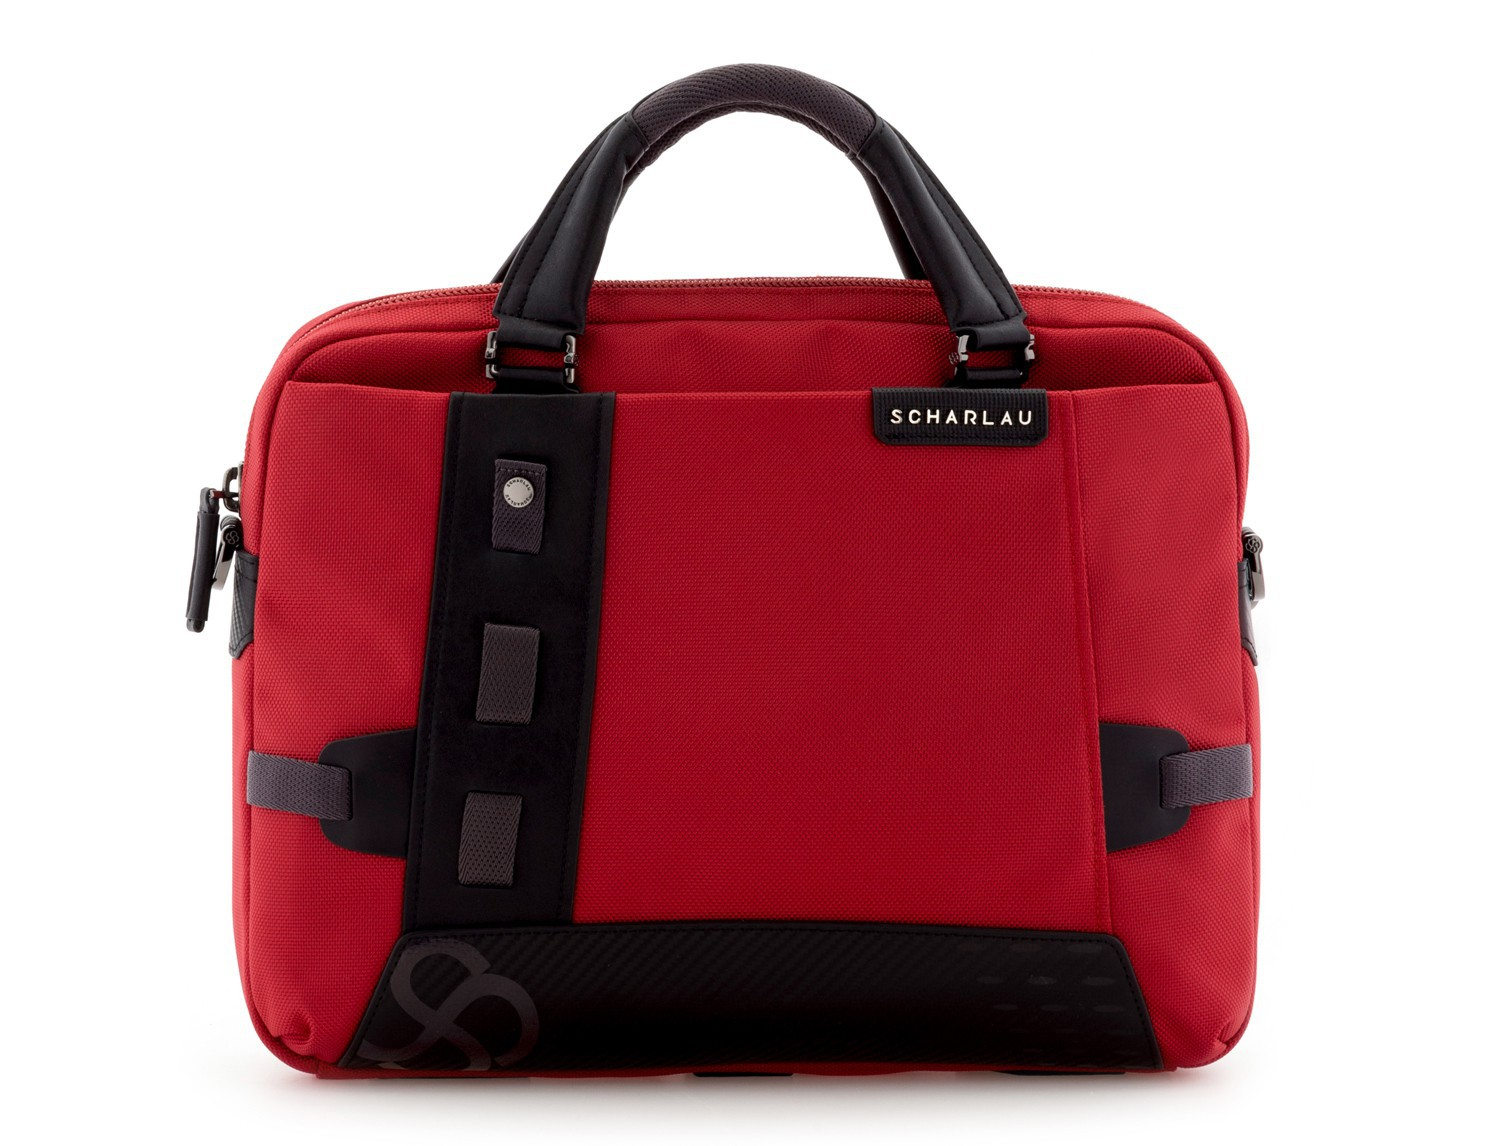 Cartella laptop rosso front